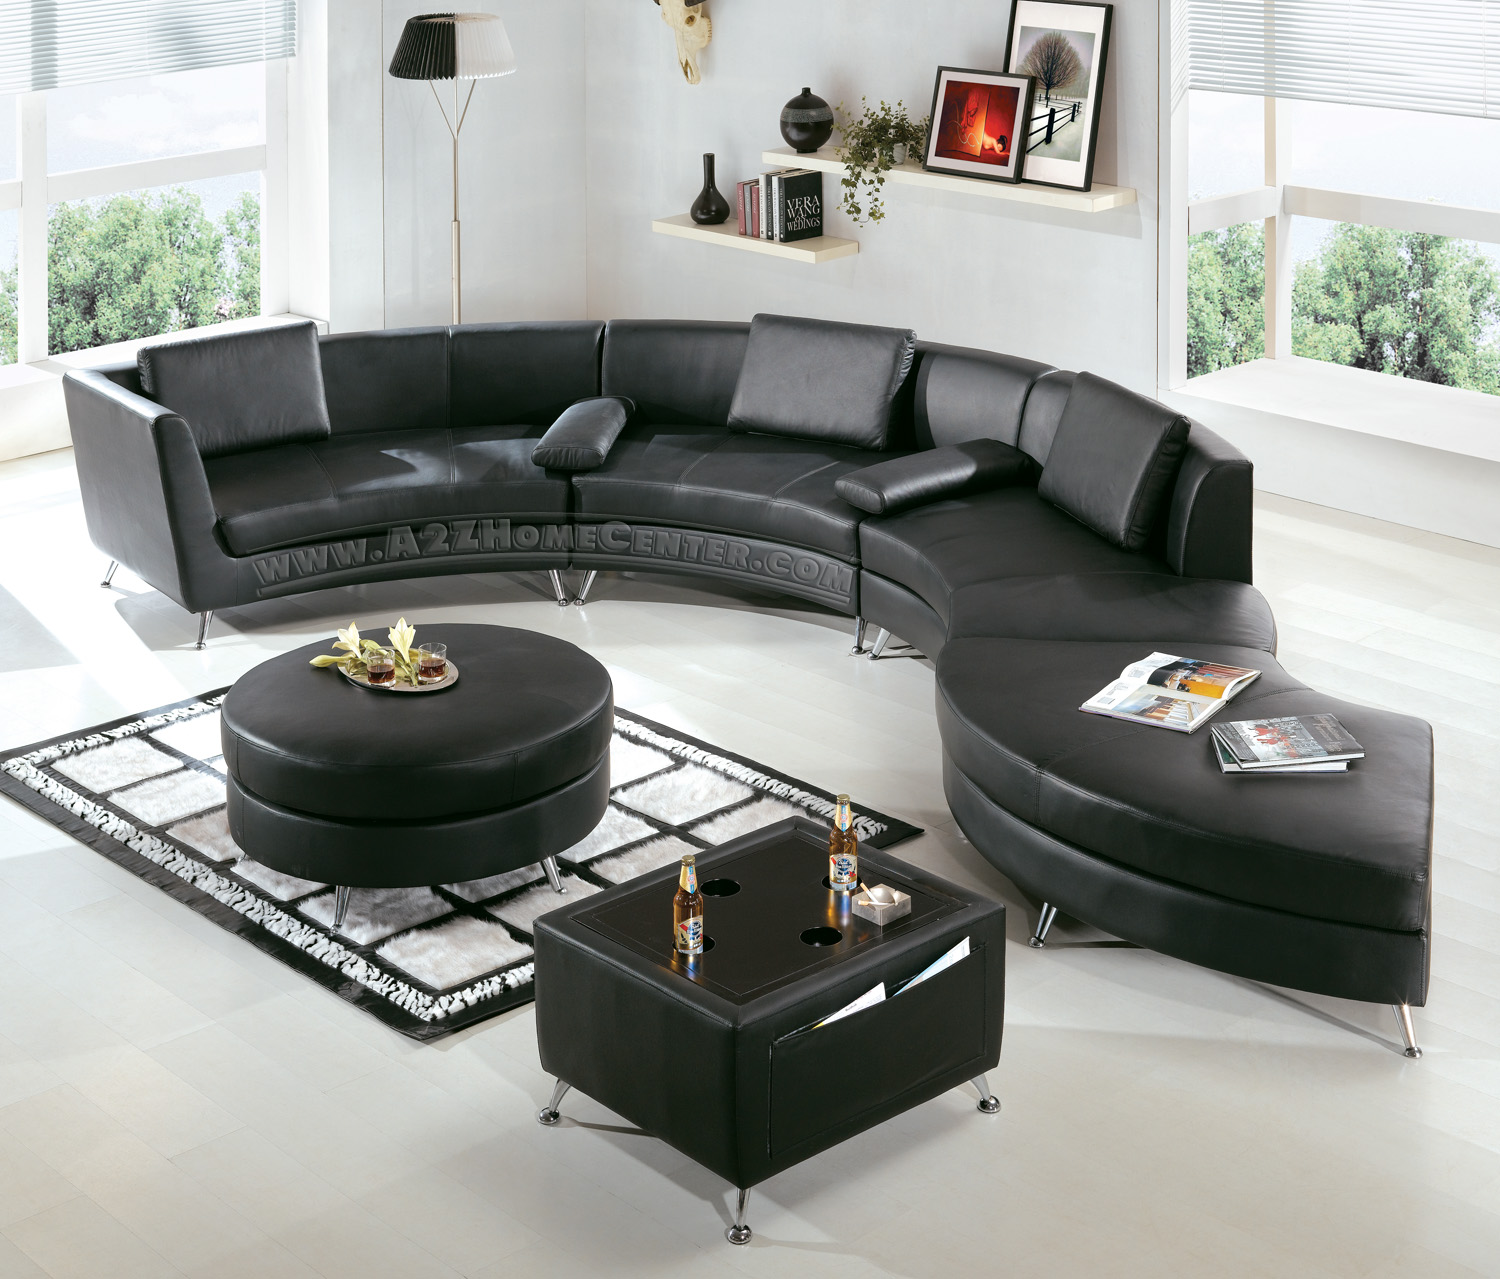 Modern Line Furniture Commercial Furniture Custom Made Furniture Seating Collection